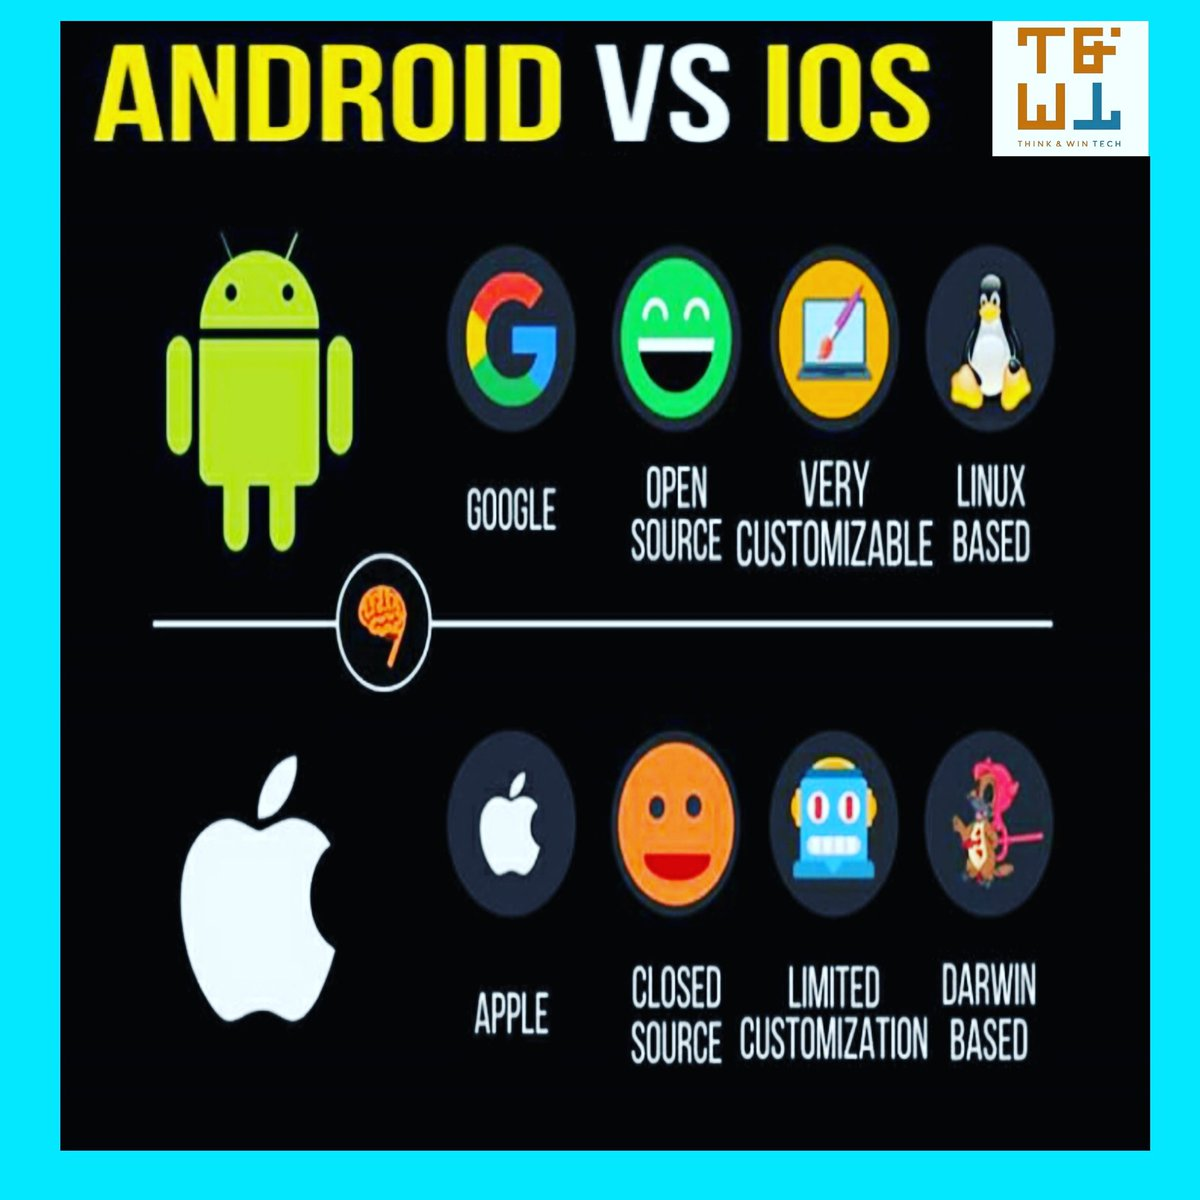 #thinkwintech #android #iphone #ios #samsung #smartphone #apple #tech #technology #pro #mobile #oneplus #s #xiaomi #plus #google #nokia #phone #app #instagood #gaming #huawei #oppo #instagram #game #vivo #like #bhfyp #galaxys #games https://t.co/E59uyamvLl